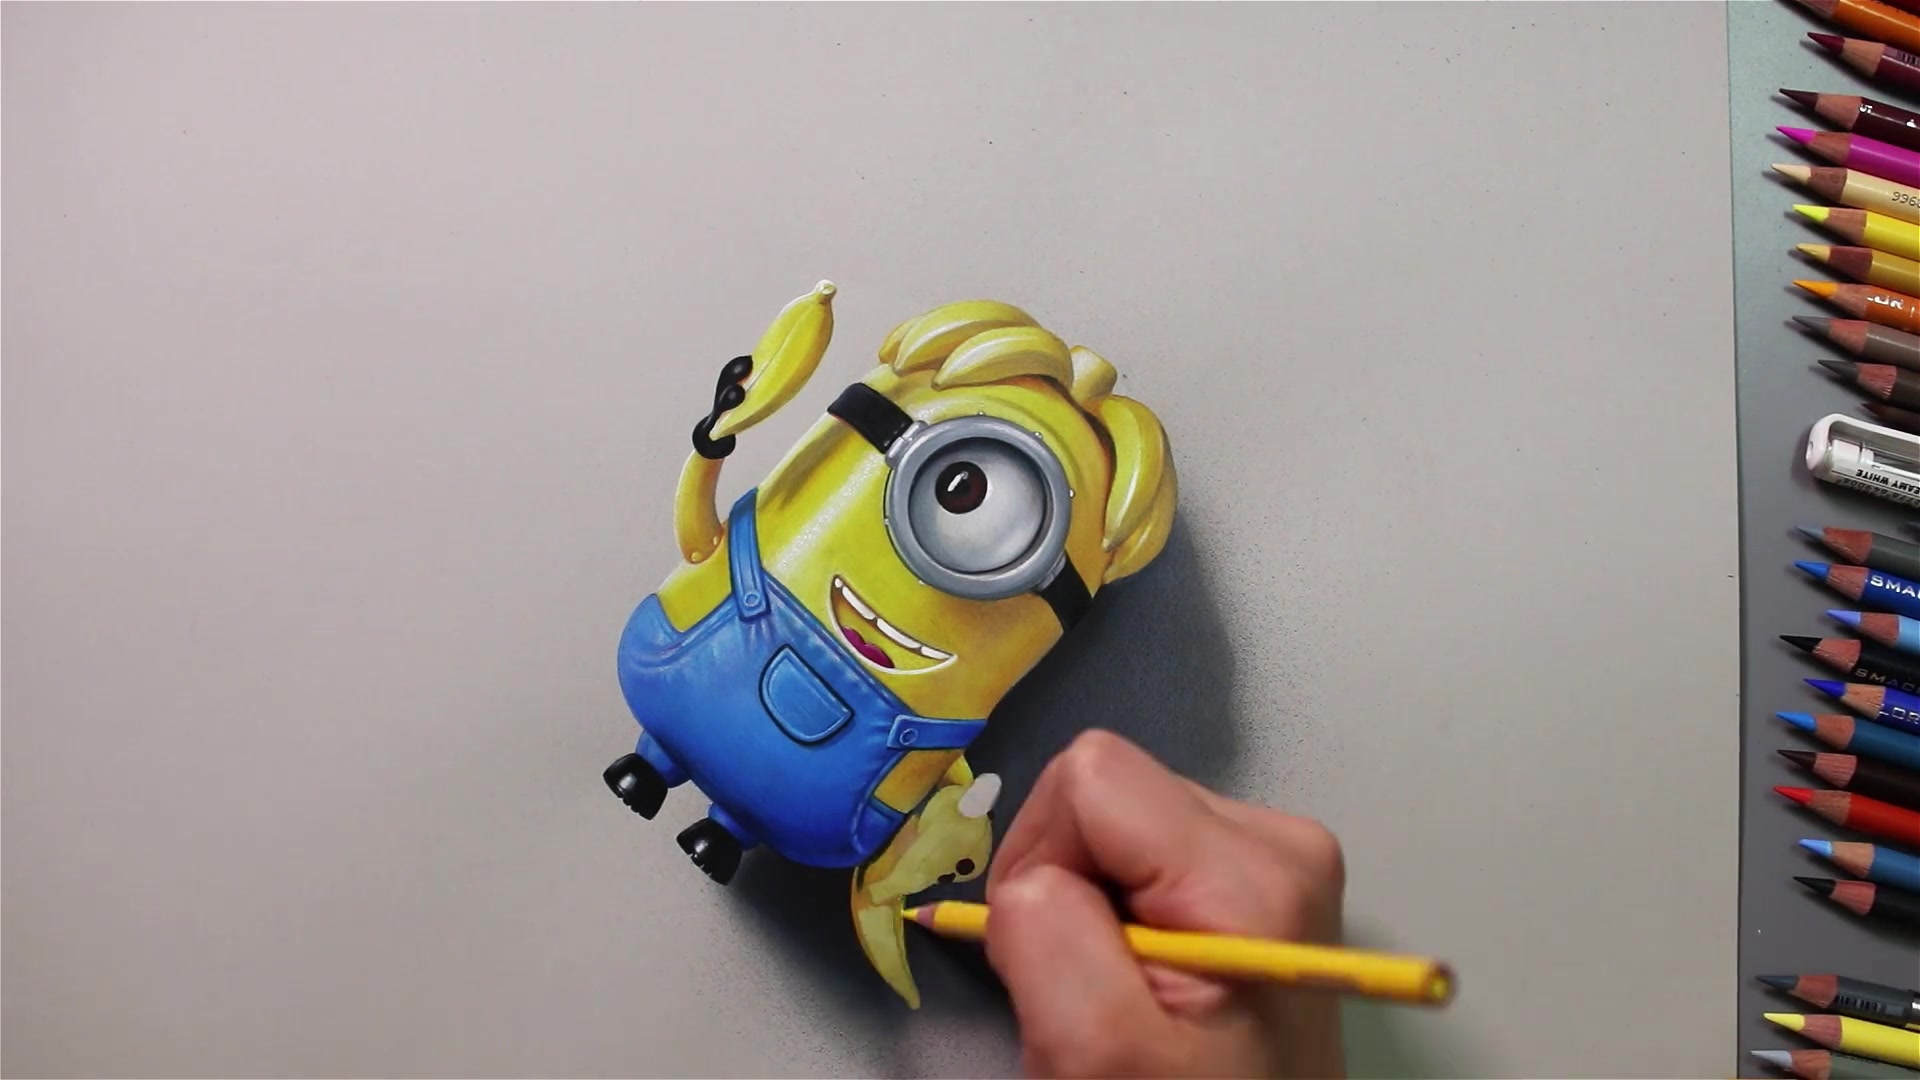 Drawing Hands Episode 50: Speed Drawing 'Despicable Me 3' Minion